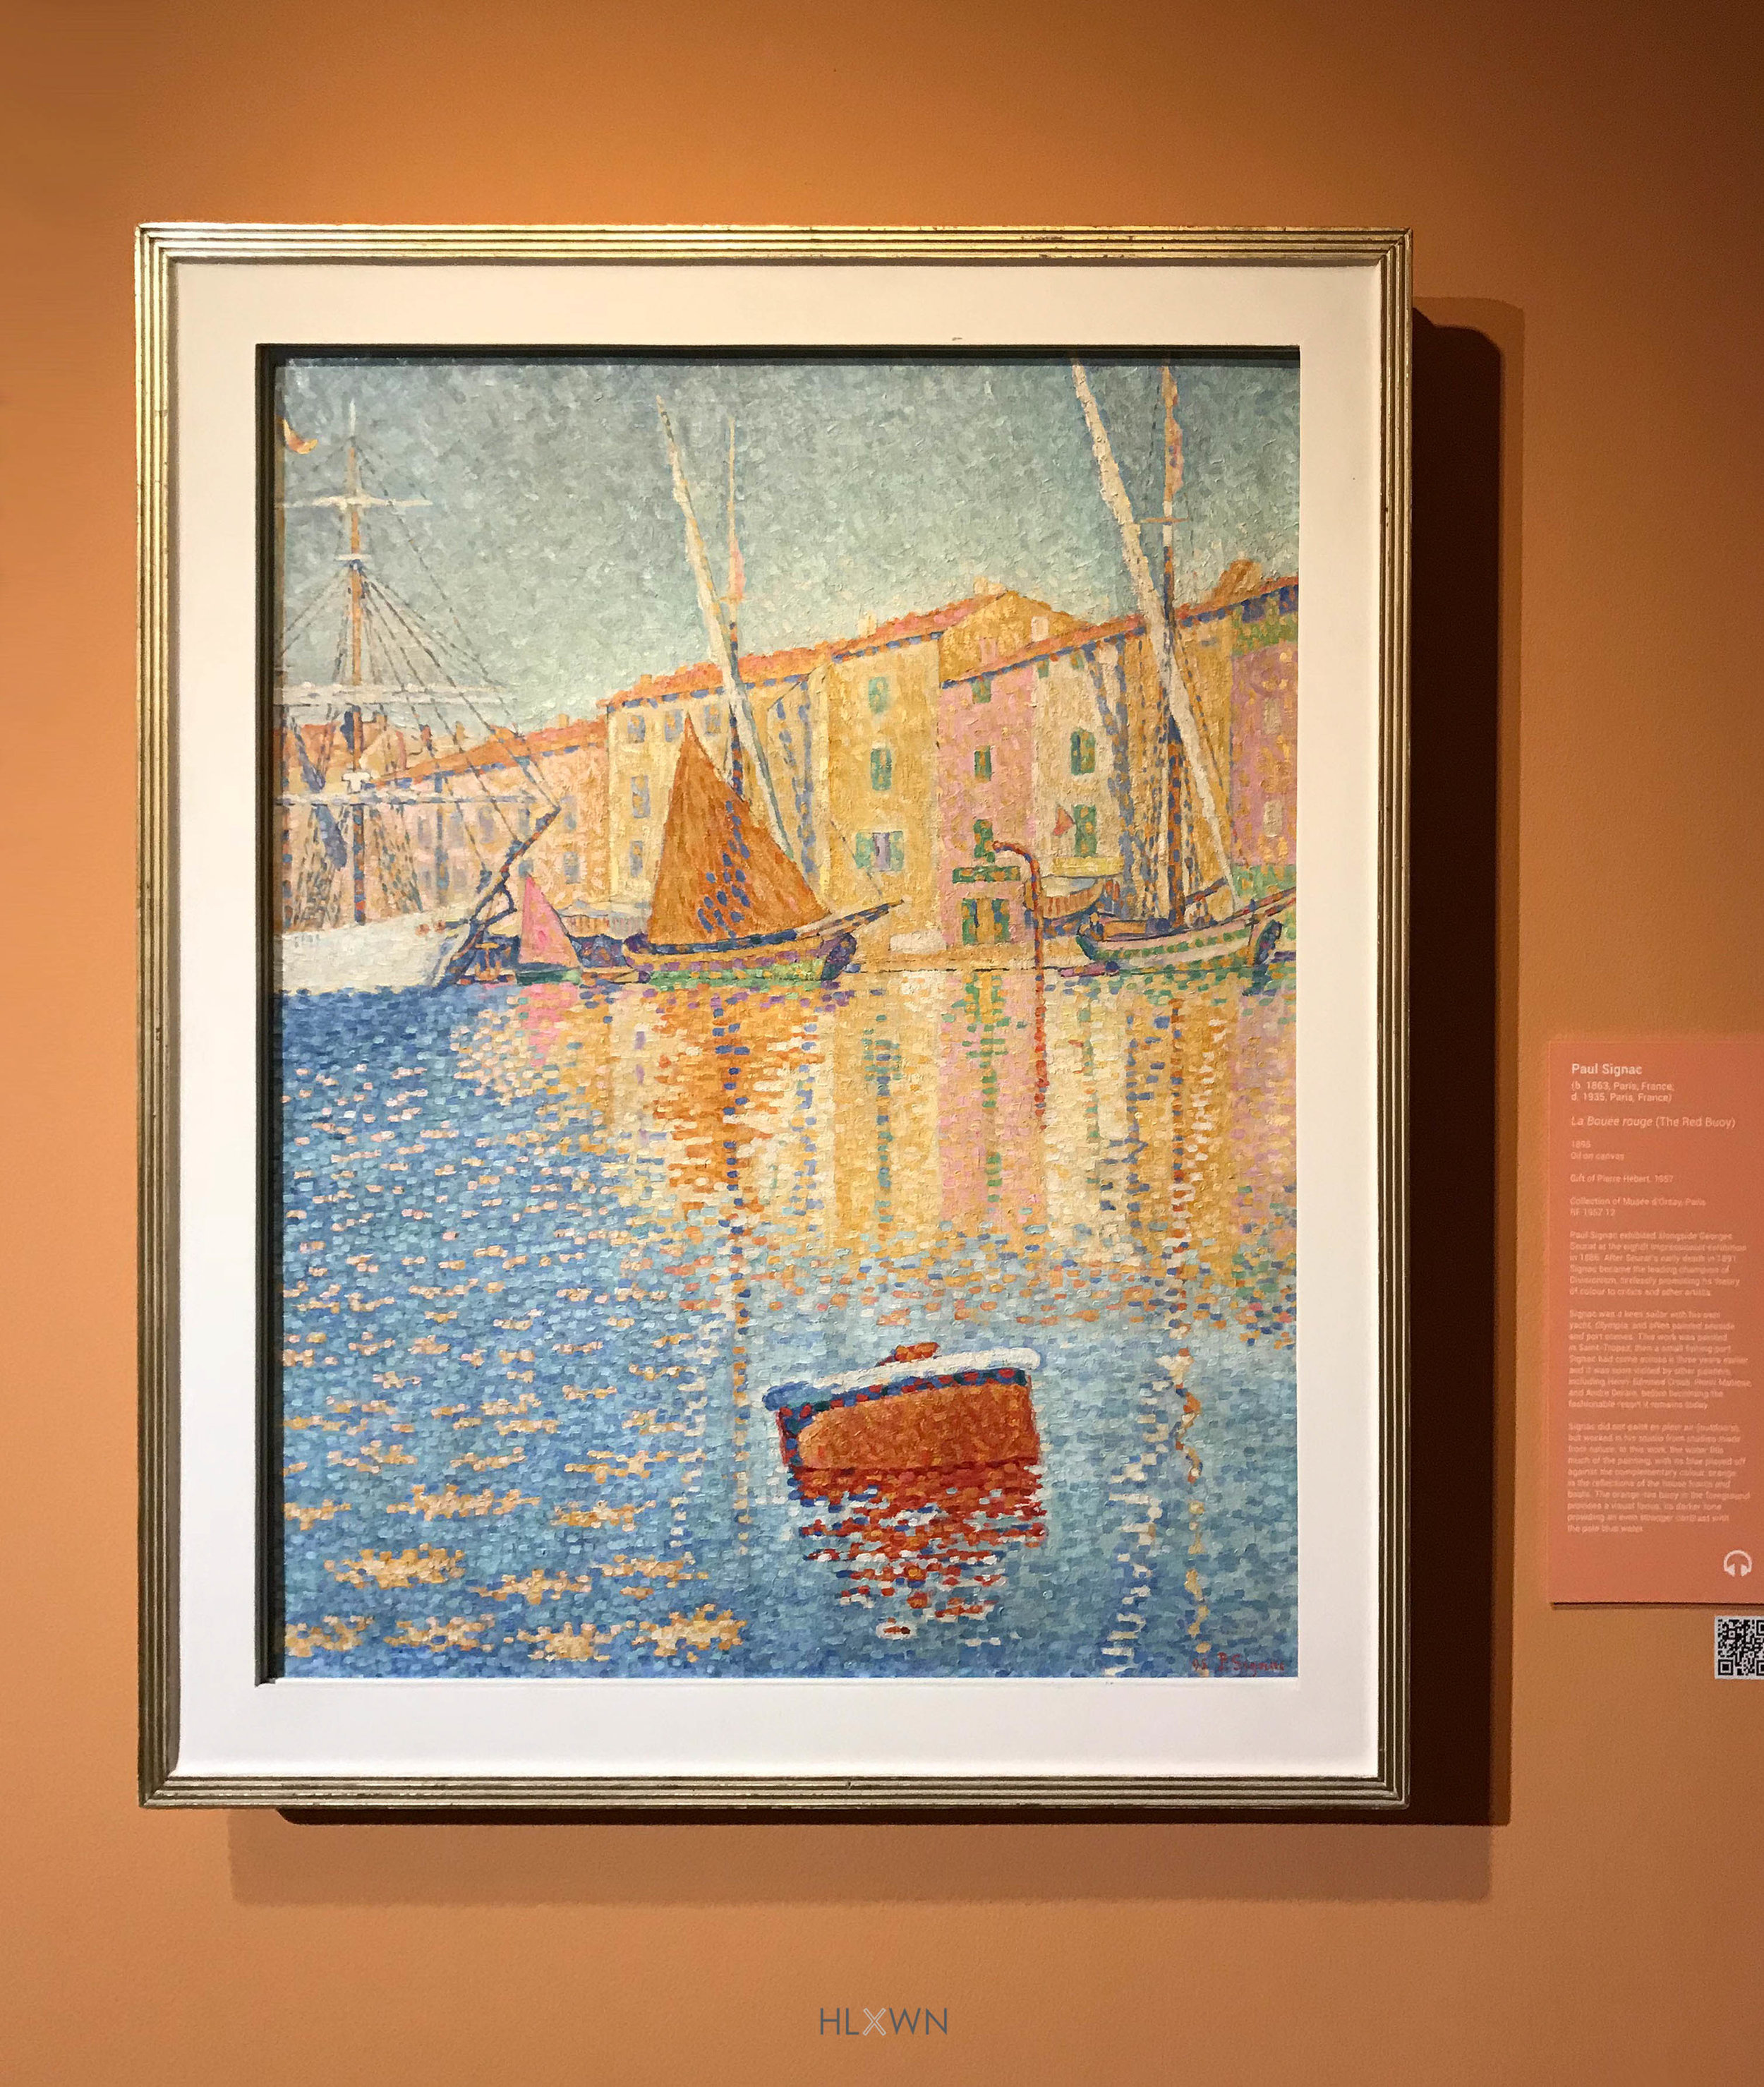 The Red Buoy by Paul Signac (Pointilism)